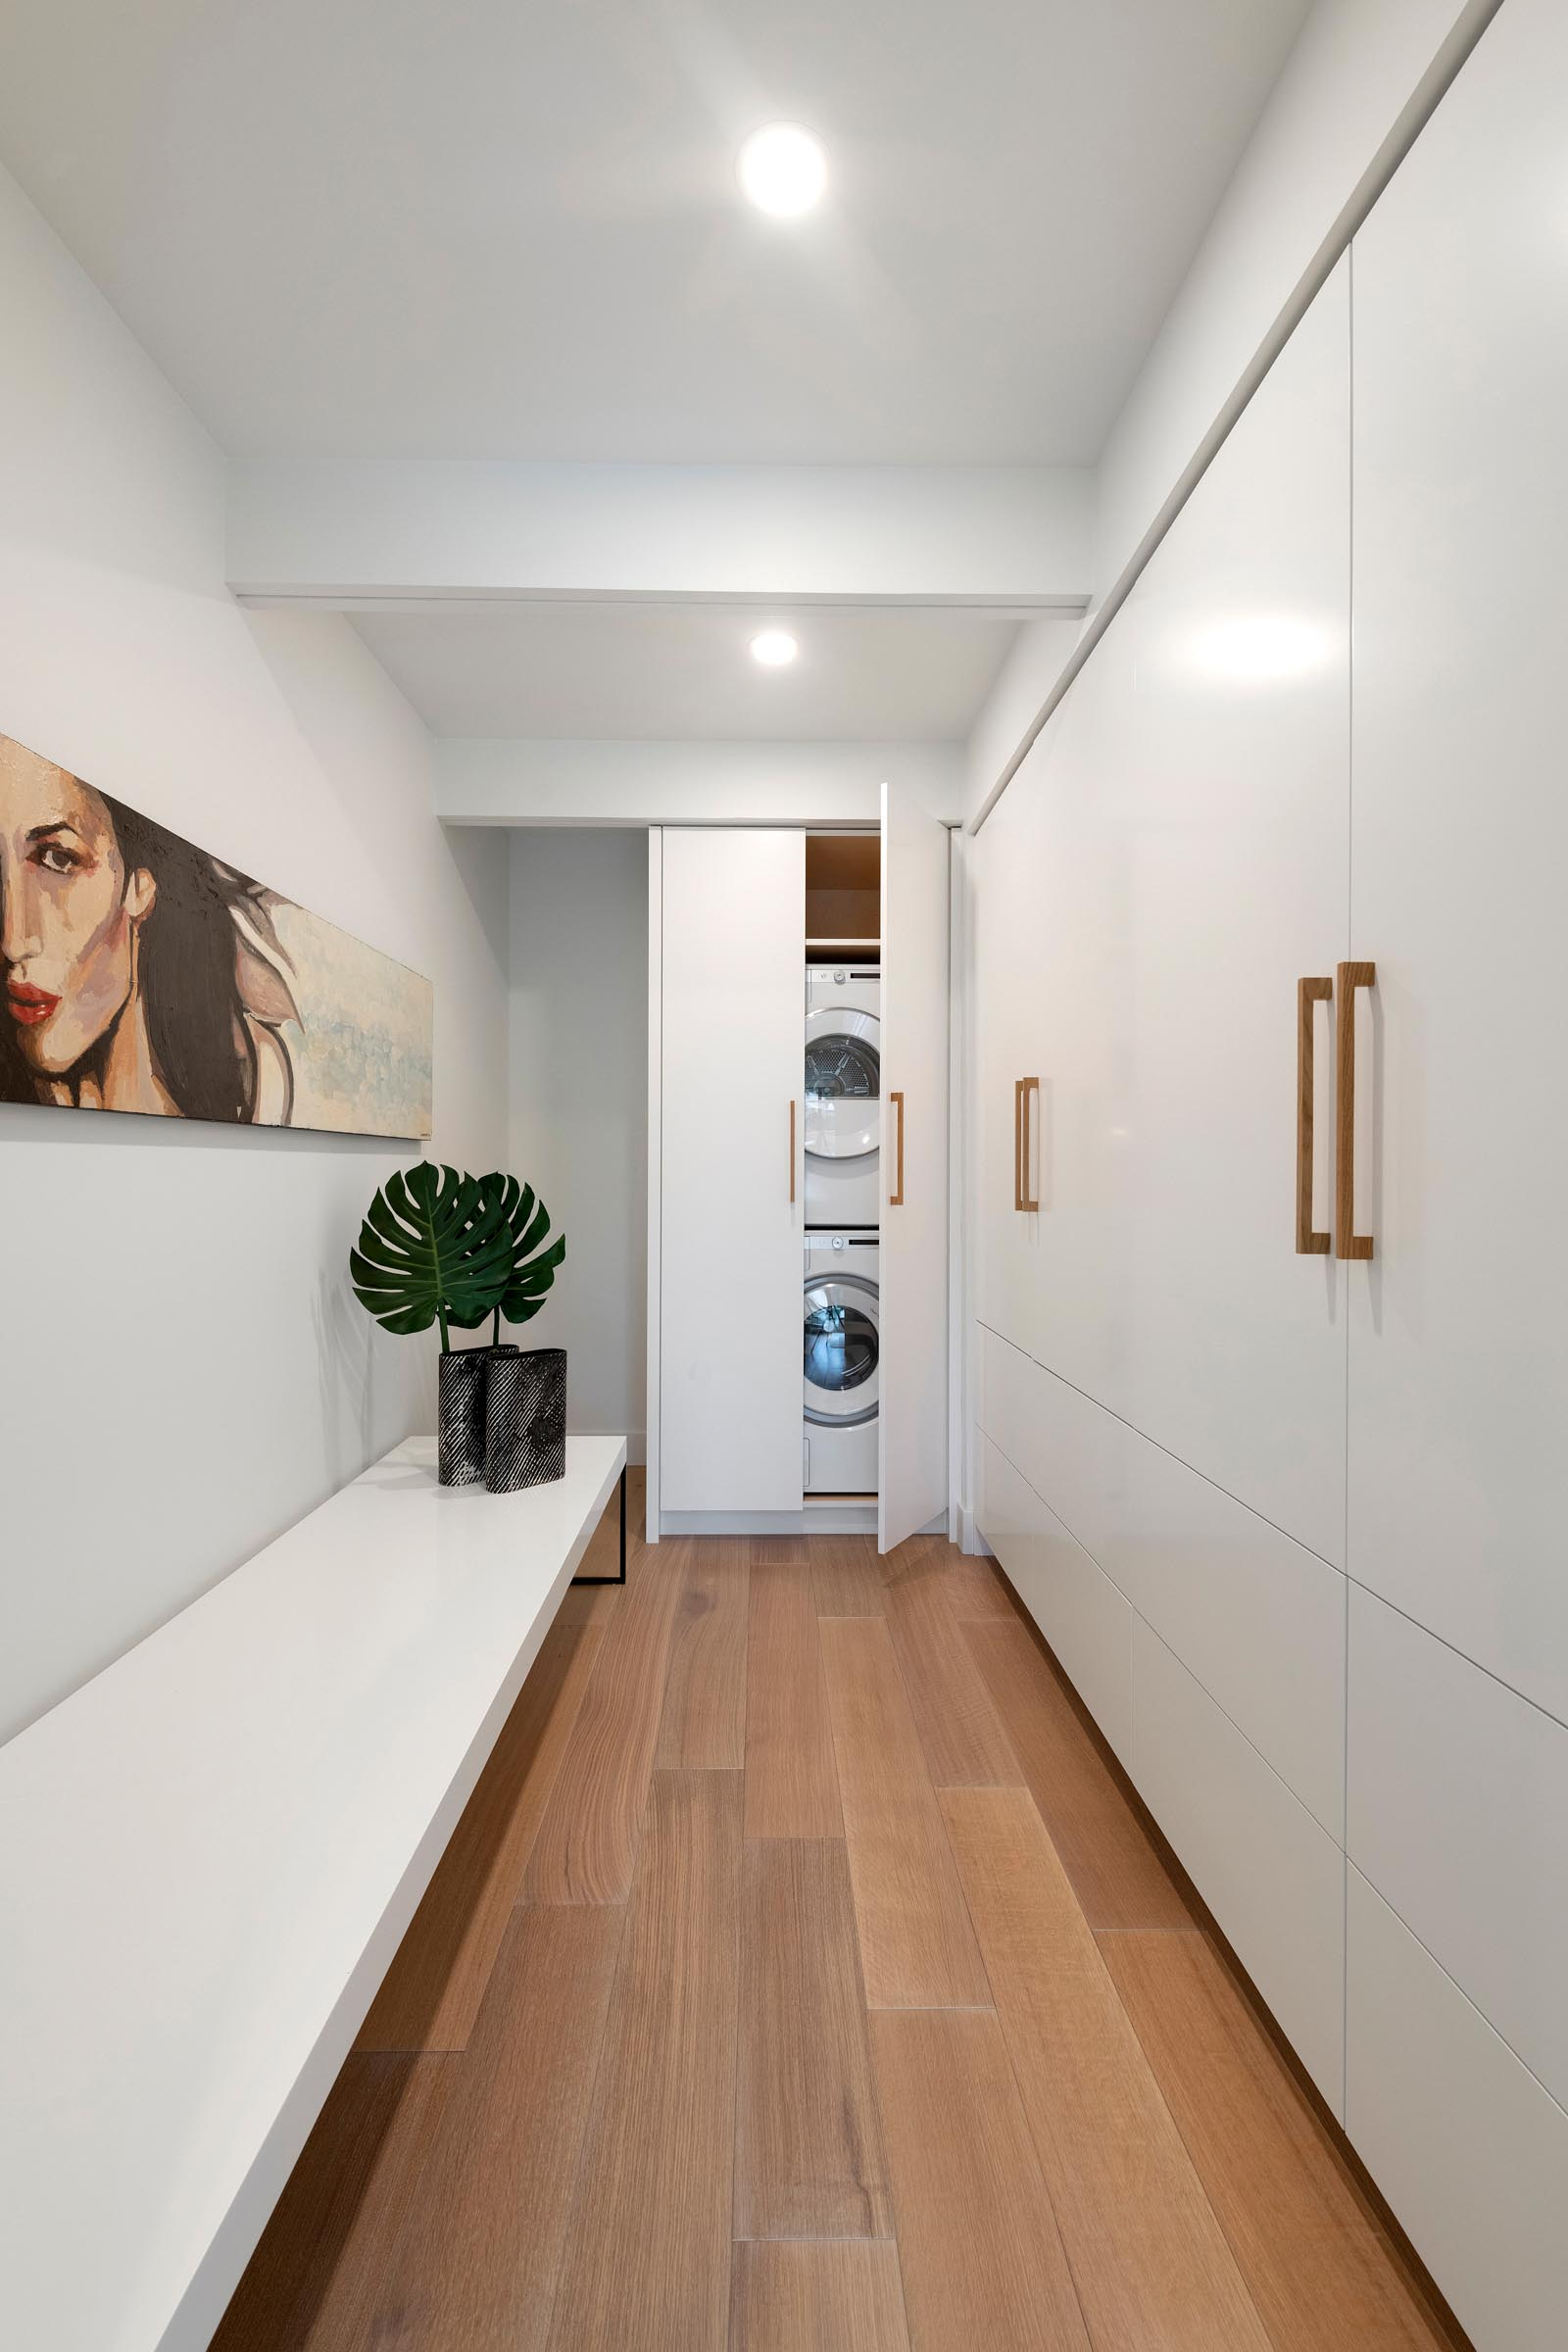 In this modern white laundry room, there's a long bench and wall of cabinetry with a washer and dryer hidden in the end cabinet.